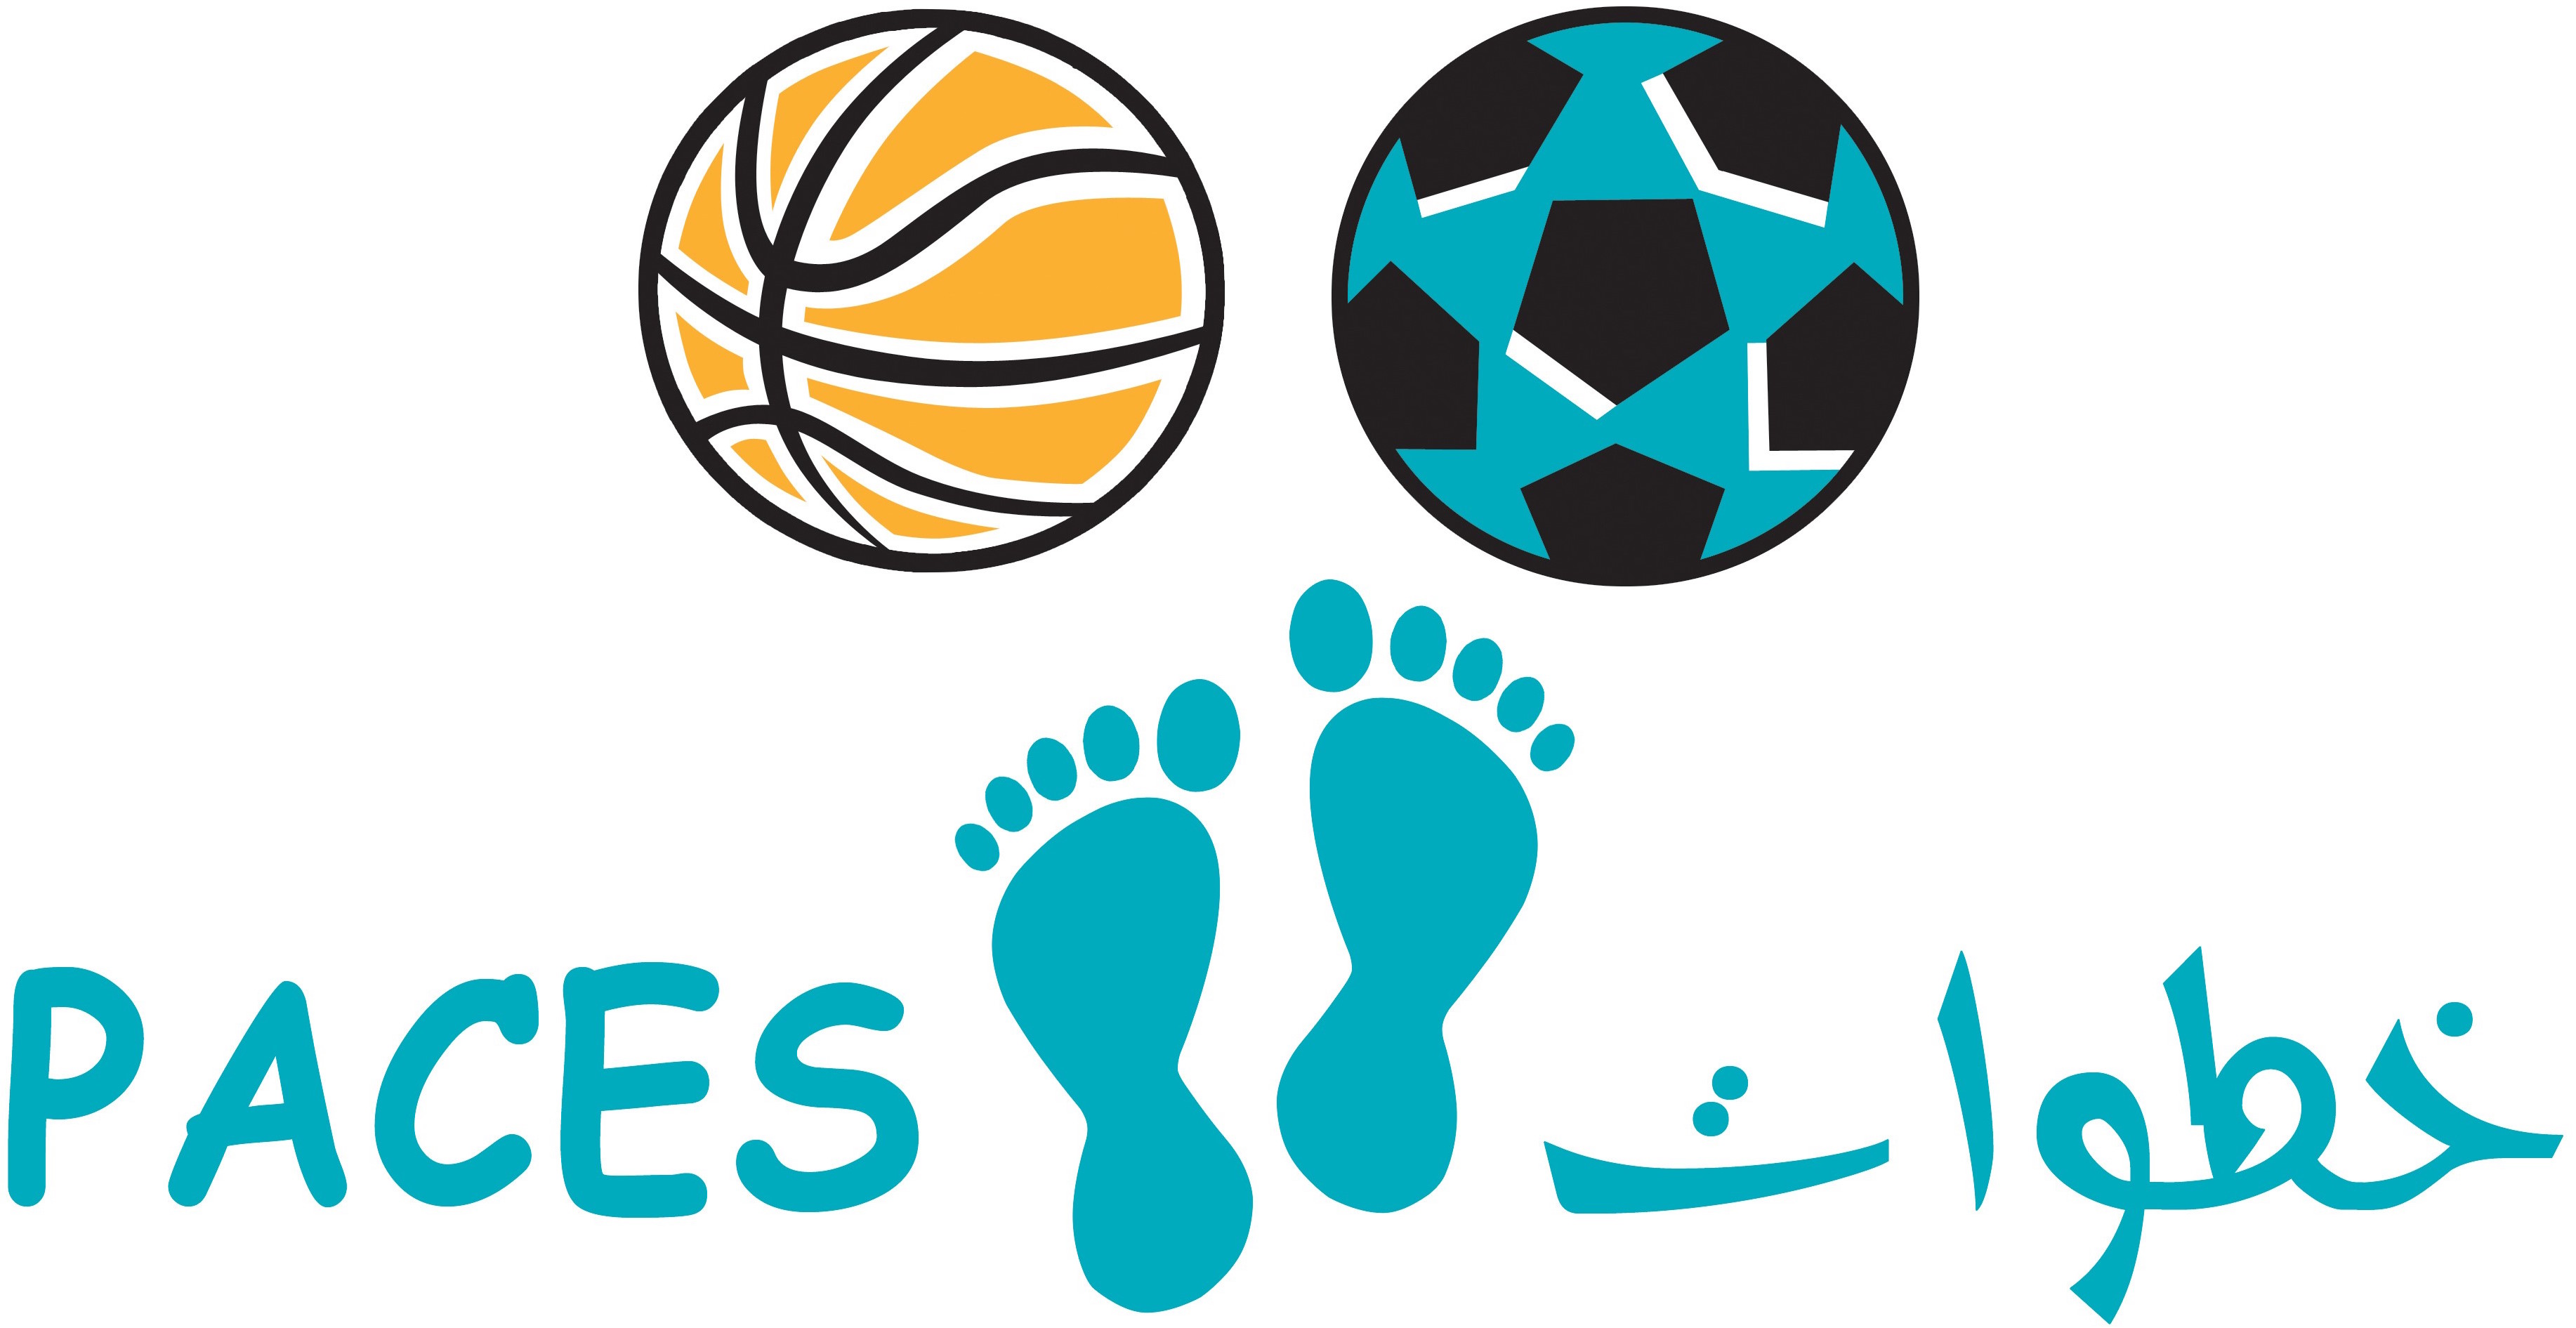 Palestine Association for Children's Encouragement of Sports - PACES